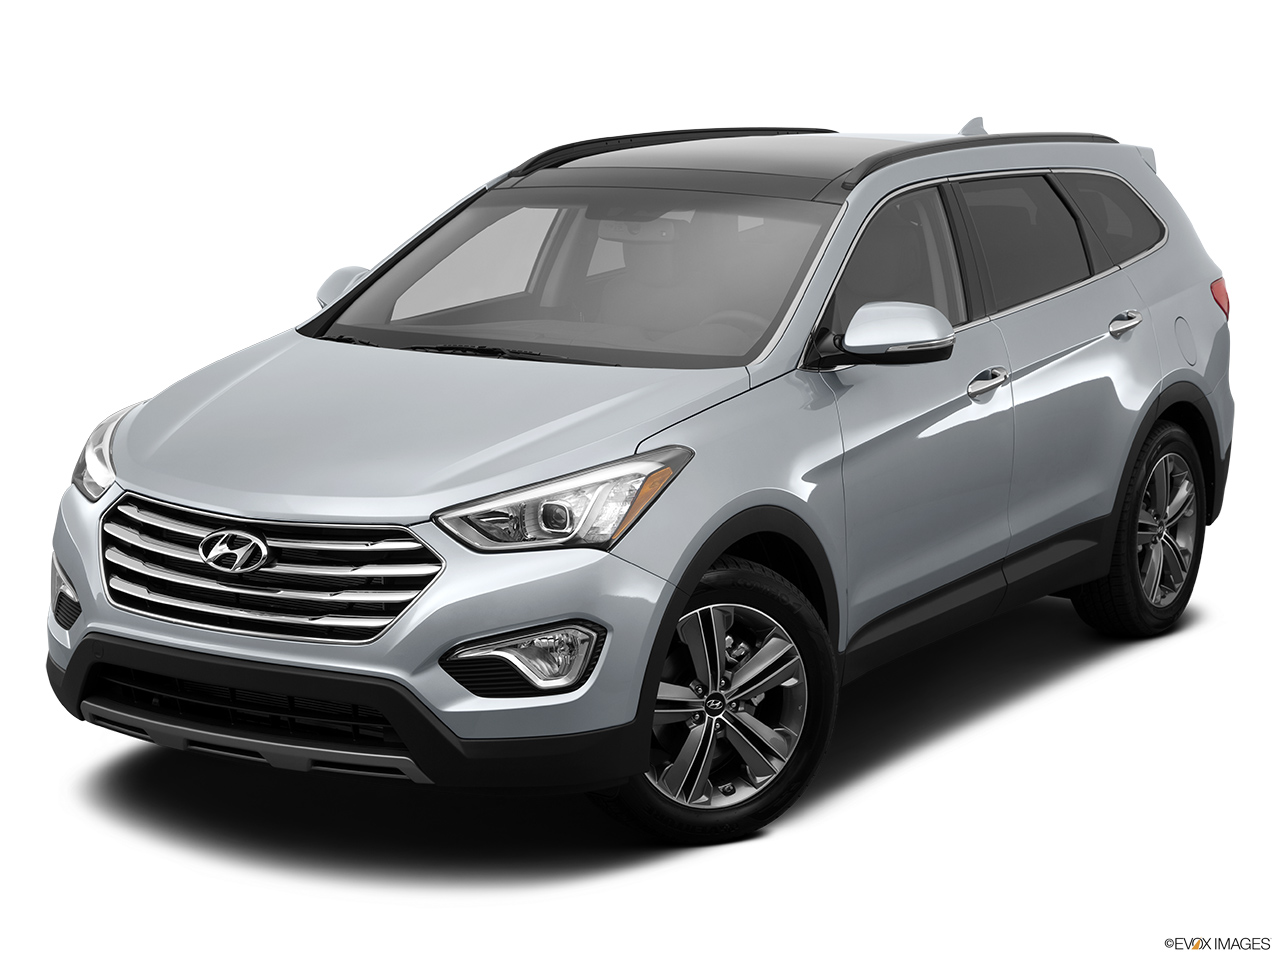 2014 hyundai santa fe awd gls. Black Bedroom Furniture Sets. Home Design Ideas